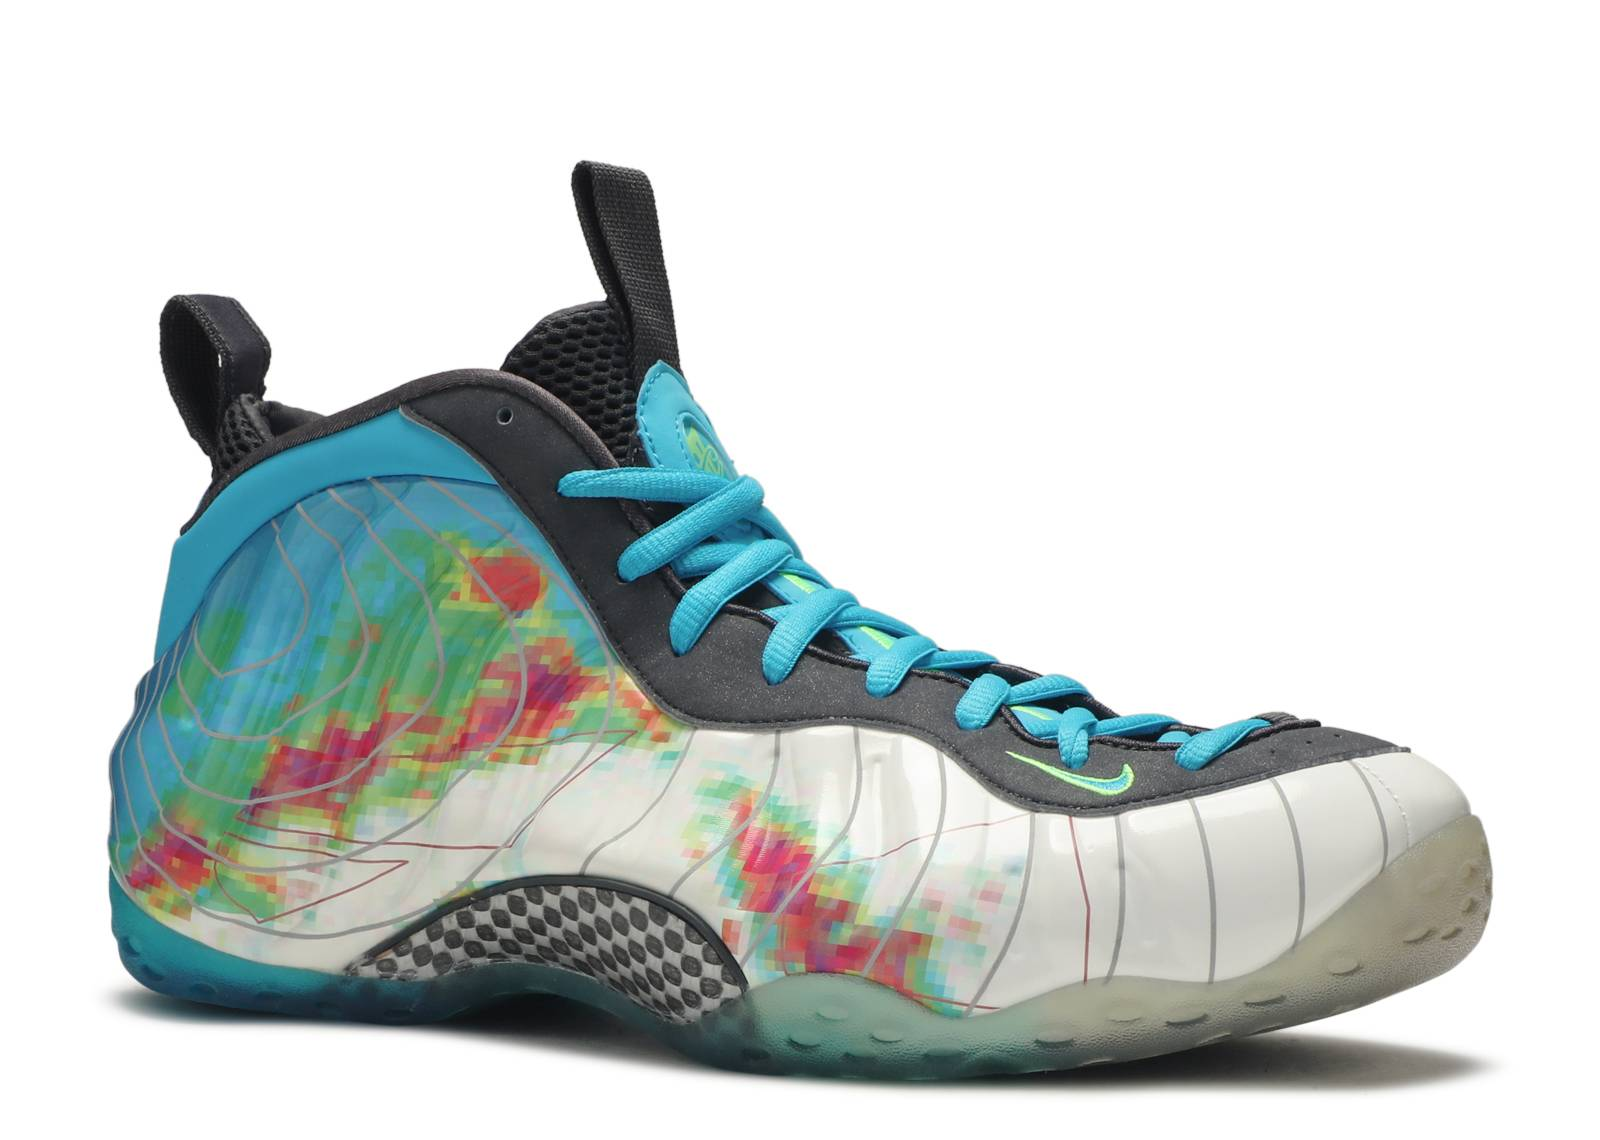 https://www.flightclub.com/media/catalog/product/n/i/nike-air-foamposite-one-prm-weatherman-whte-current-blue-flash-lime-041955_2.png